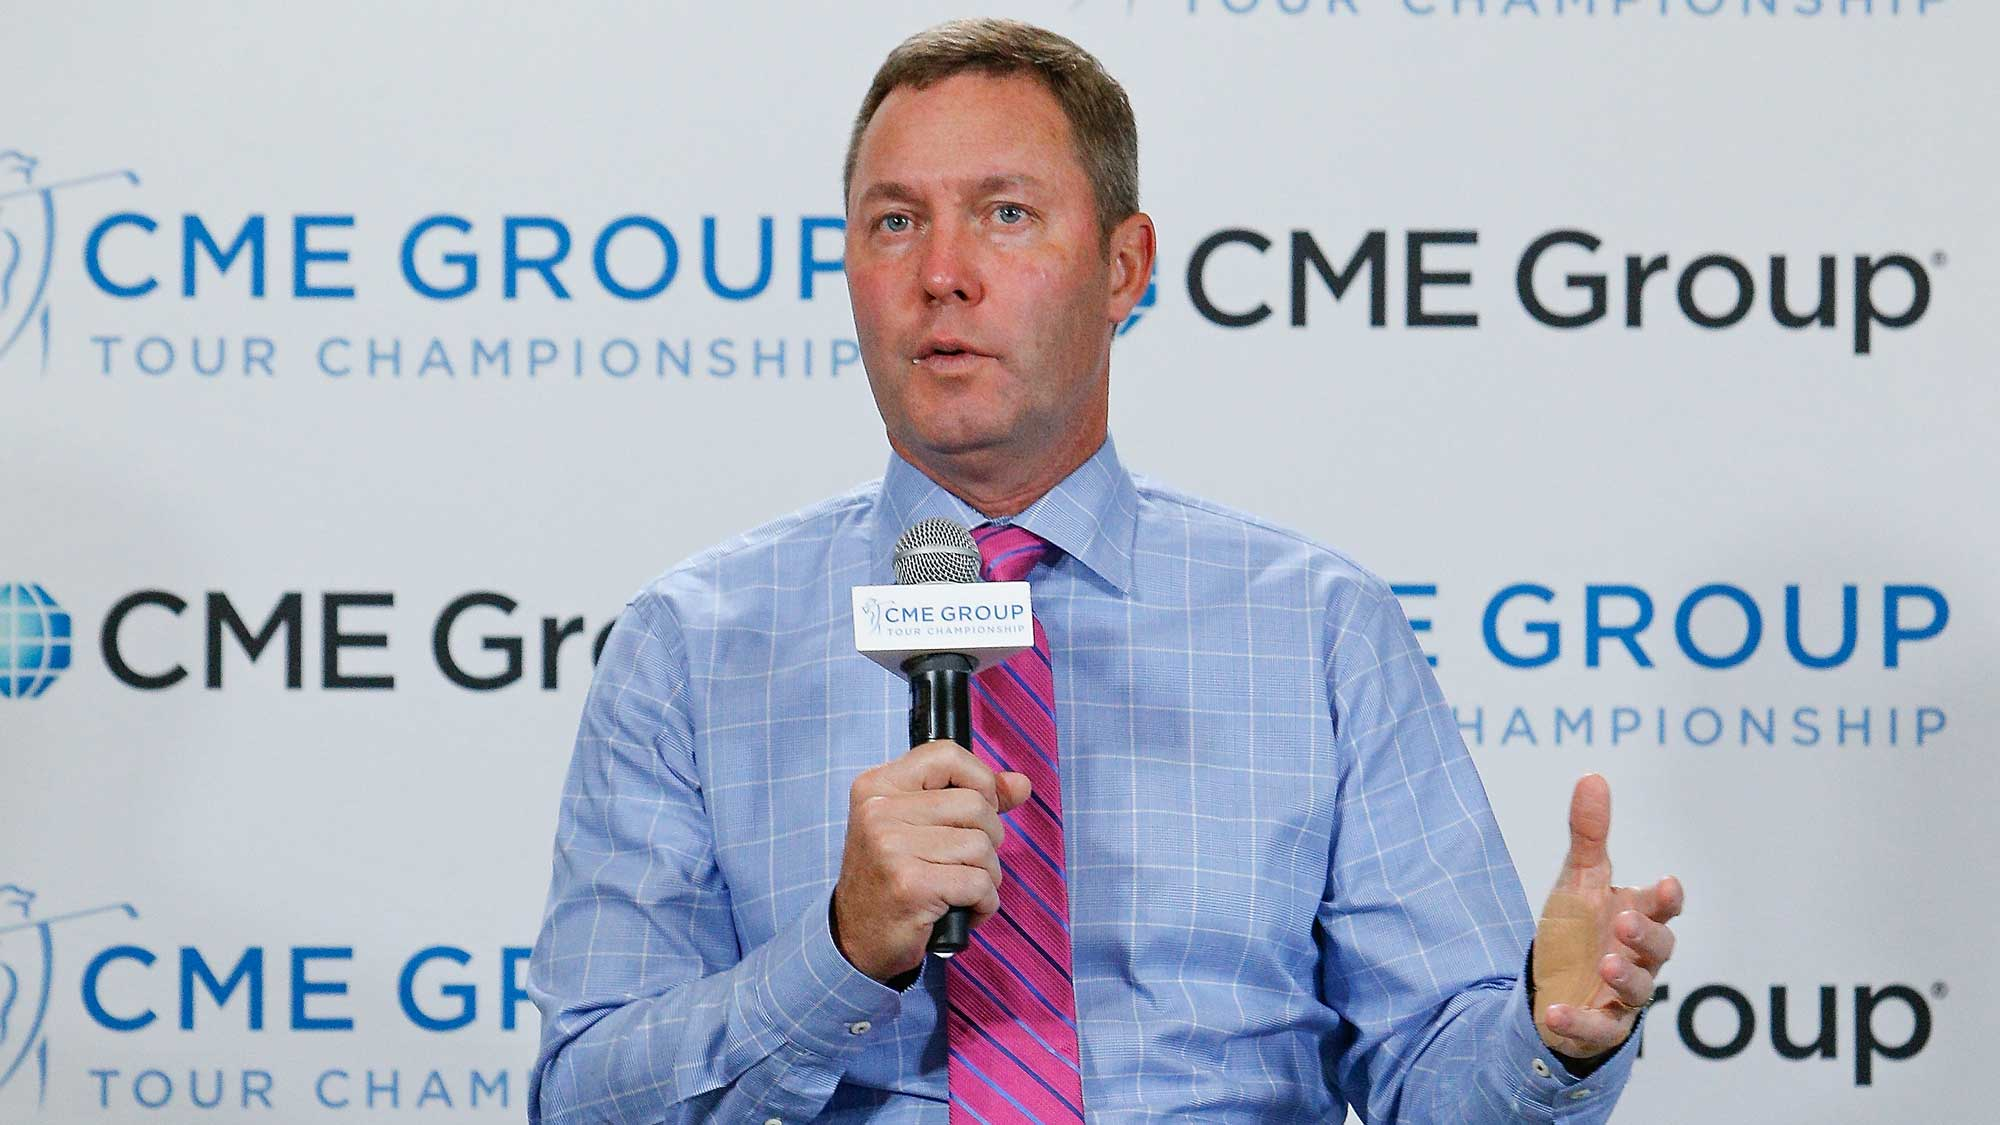 LPGA Commissioner Michael Whan address the media during State of the LPGA at the CME Group Tour Championship